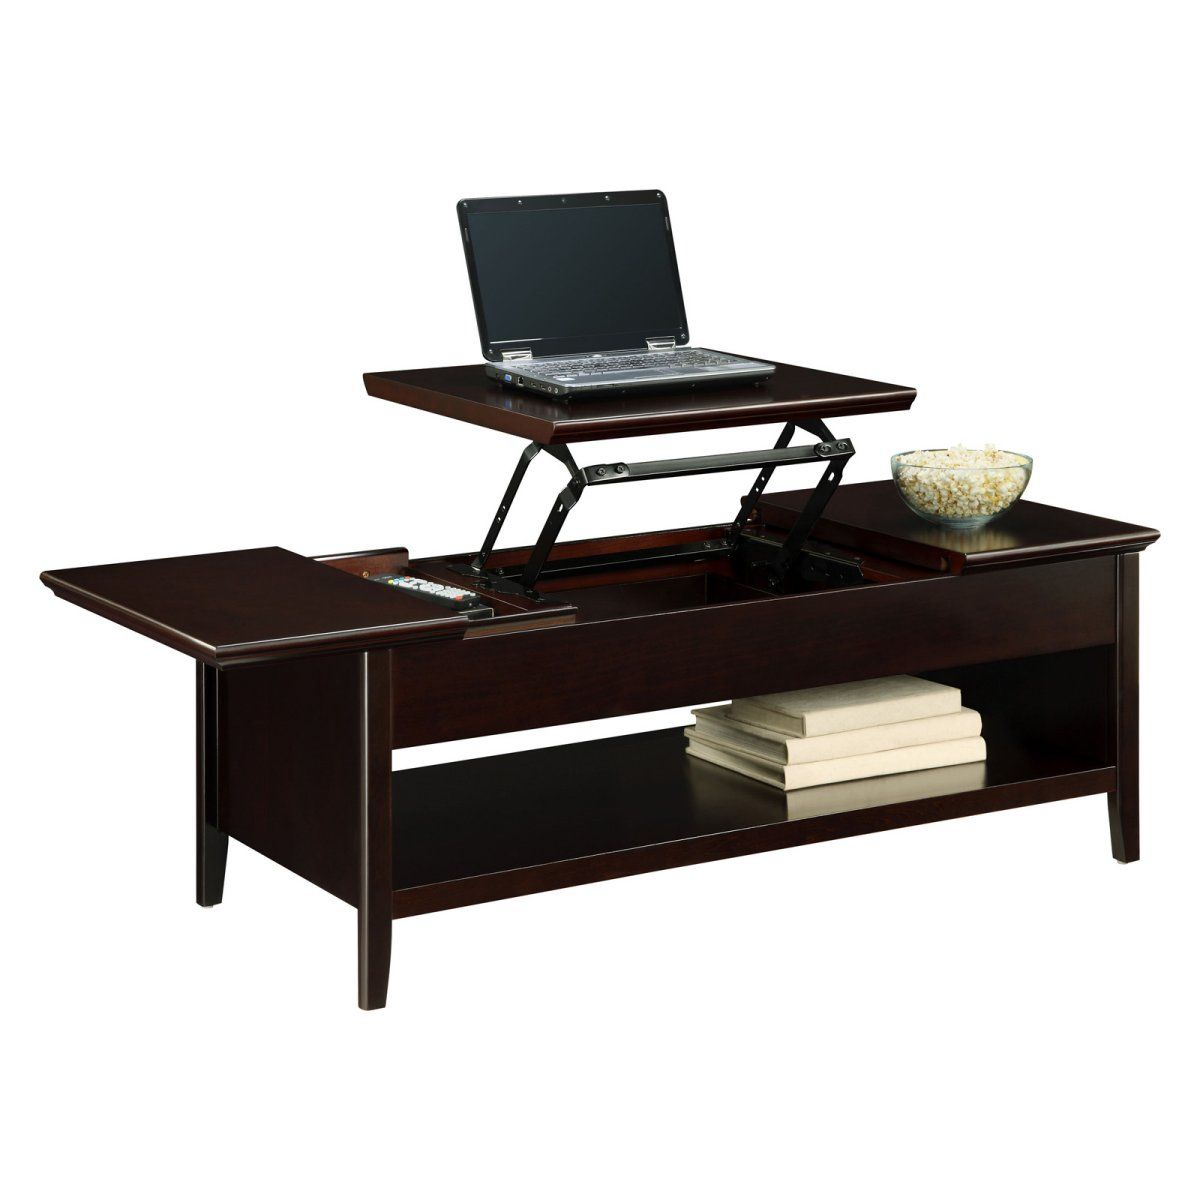 Ines Lift Top Cocktail Table Coffee Table Wood Coffee Table Leather Coffee Table [ 1107 x 1500 Pixel ]